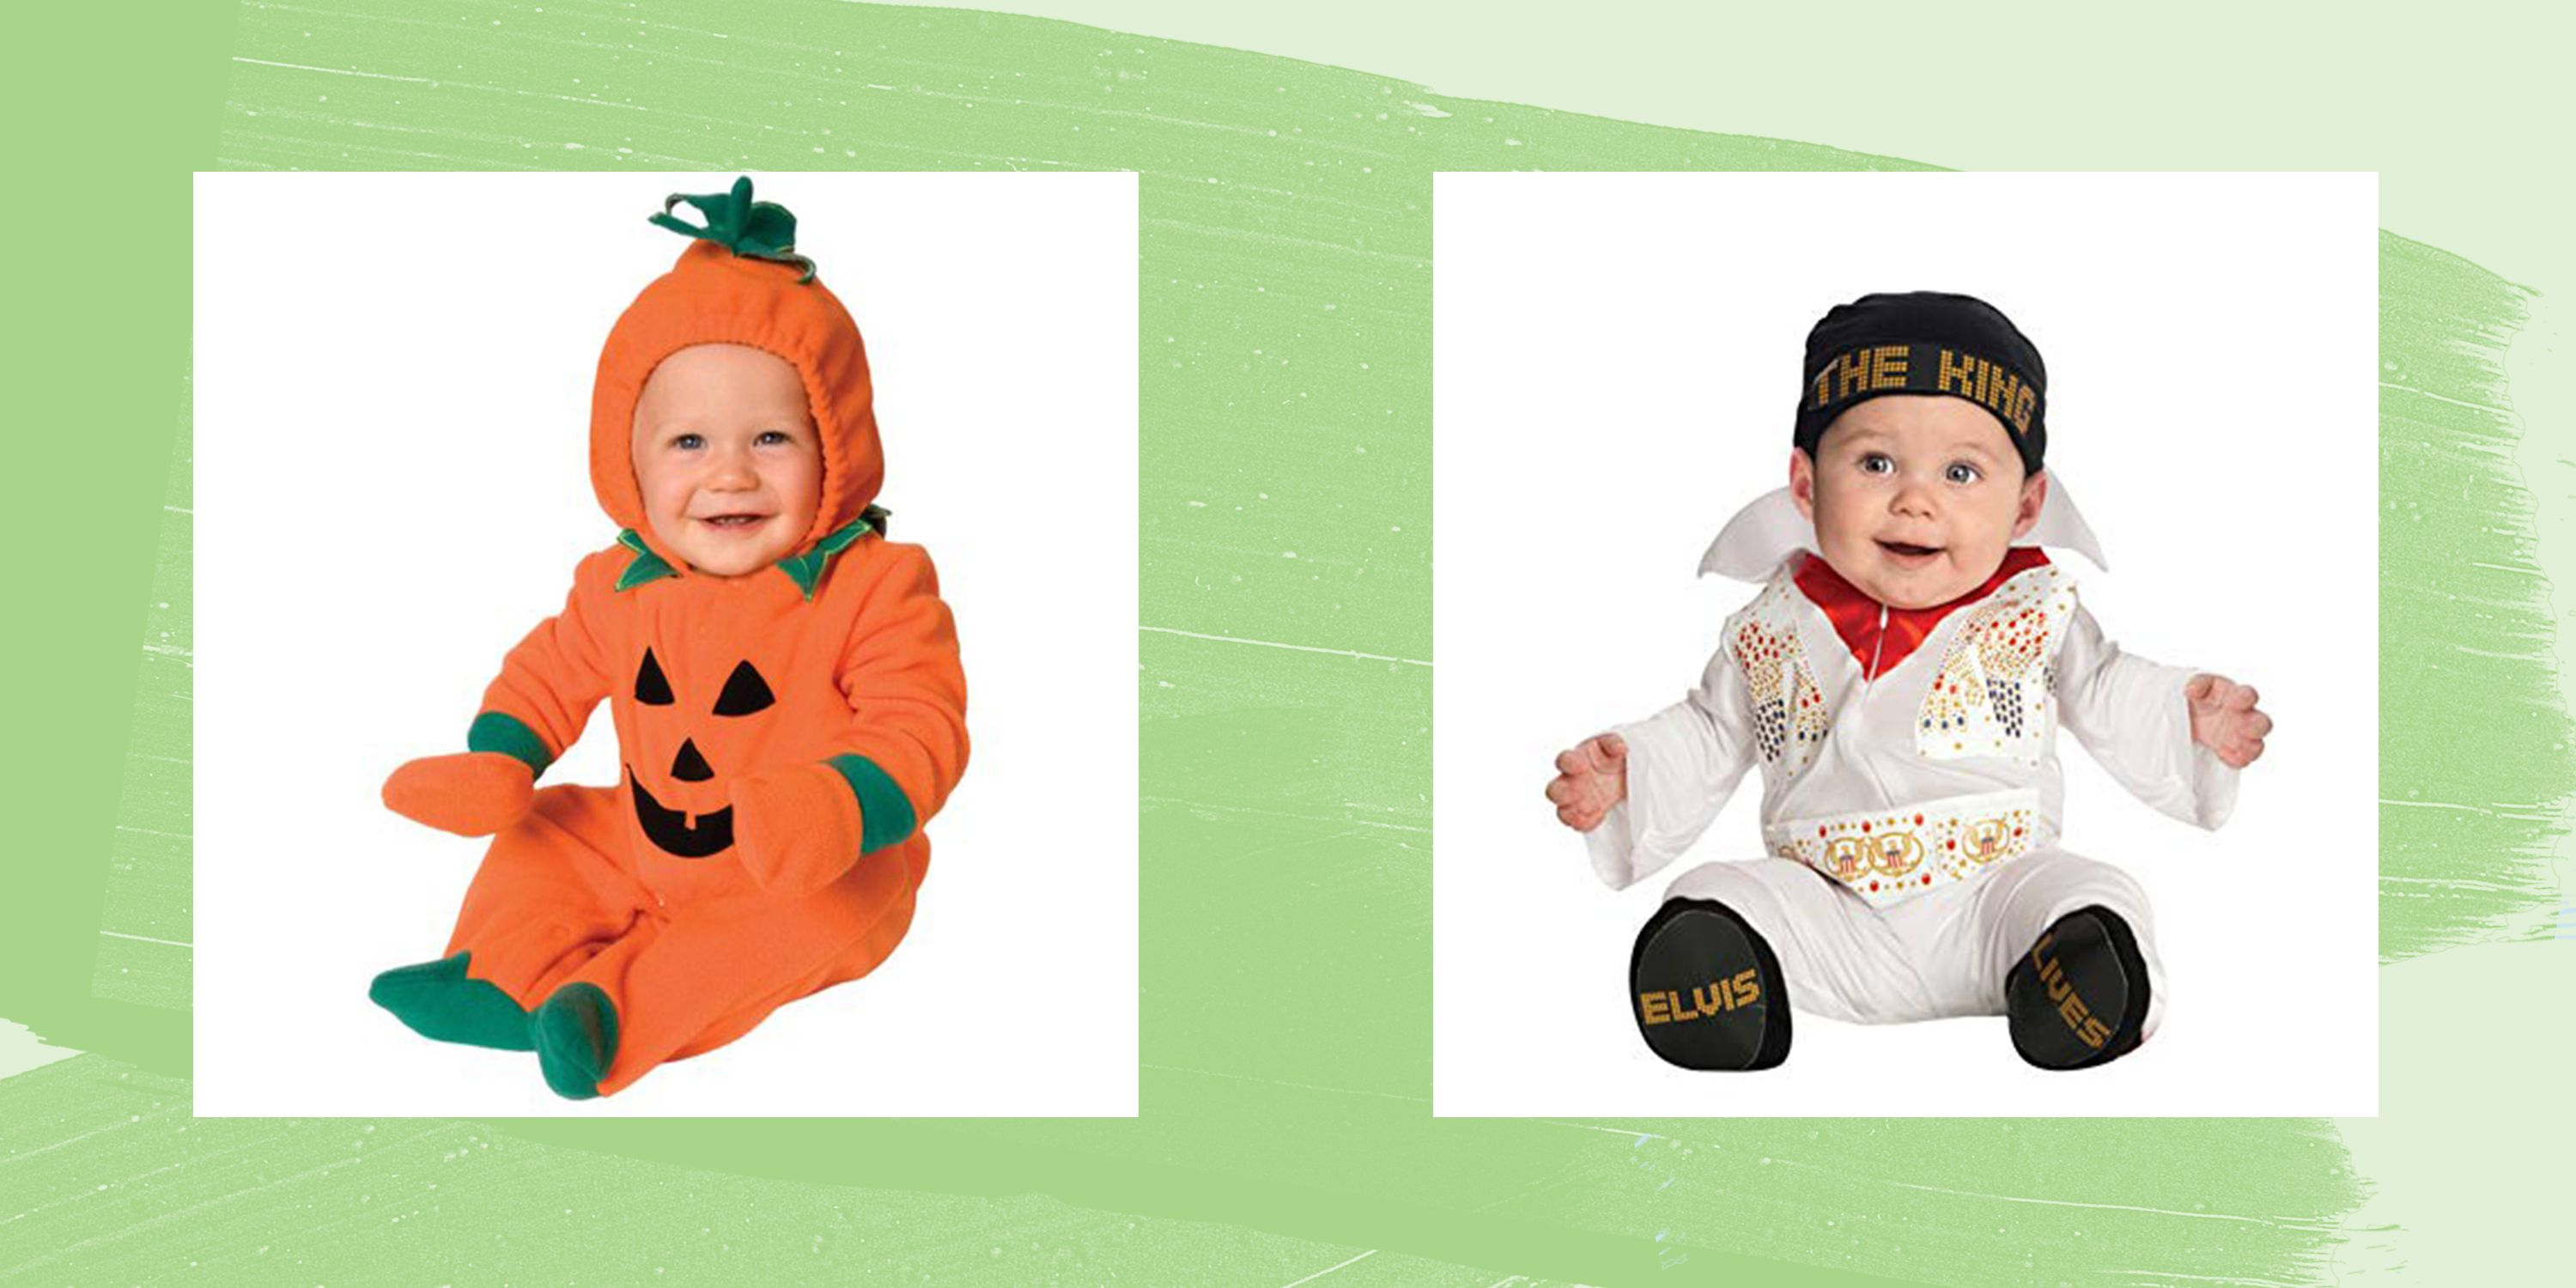 4546f248279f 37 Cute Baby Halloween Costumes for Boys & Girls in 2019 - DIY Costume Ideas  for Infants